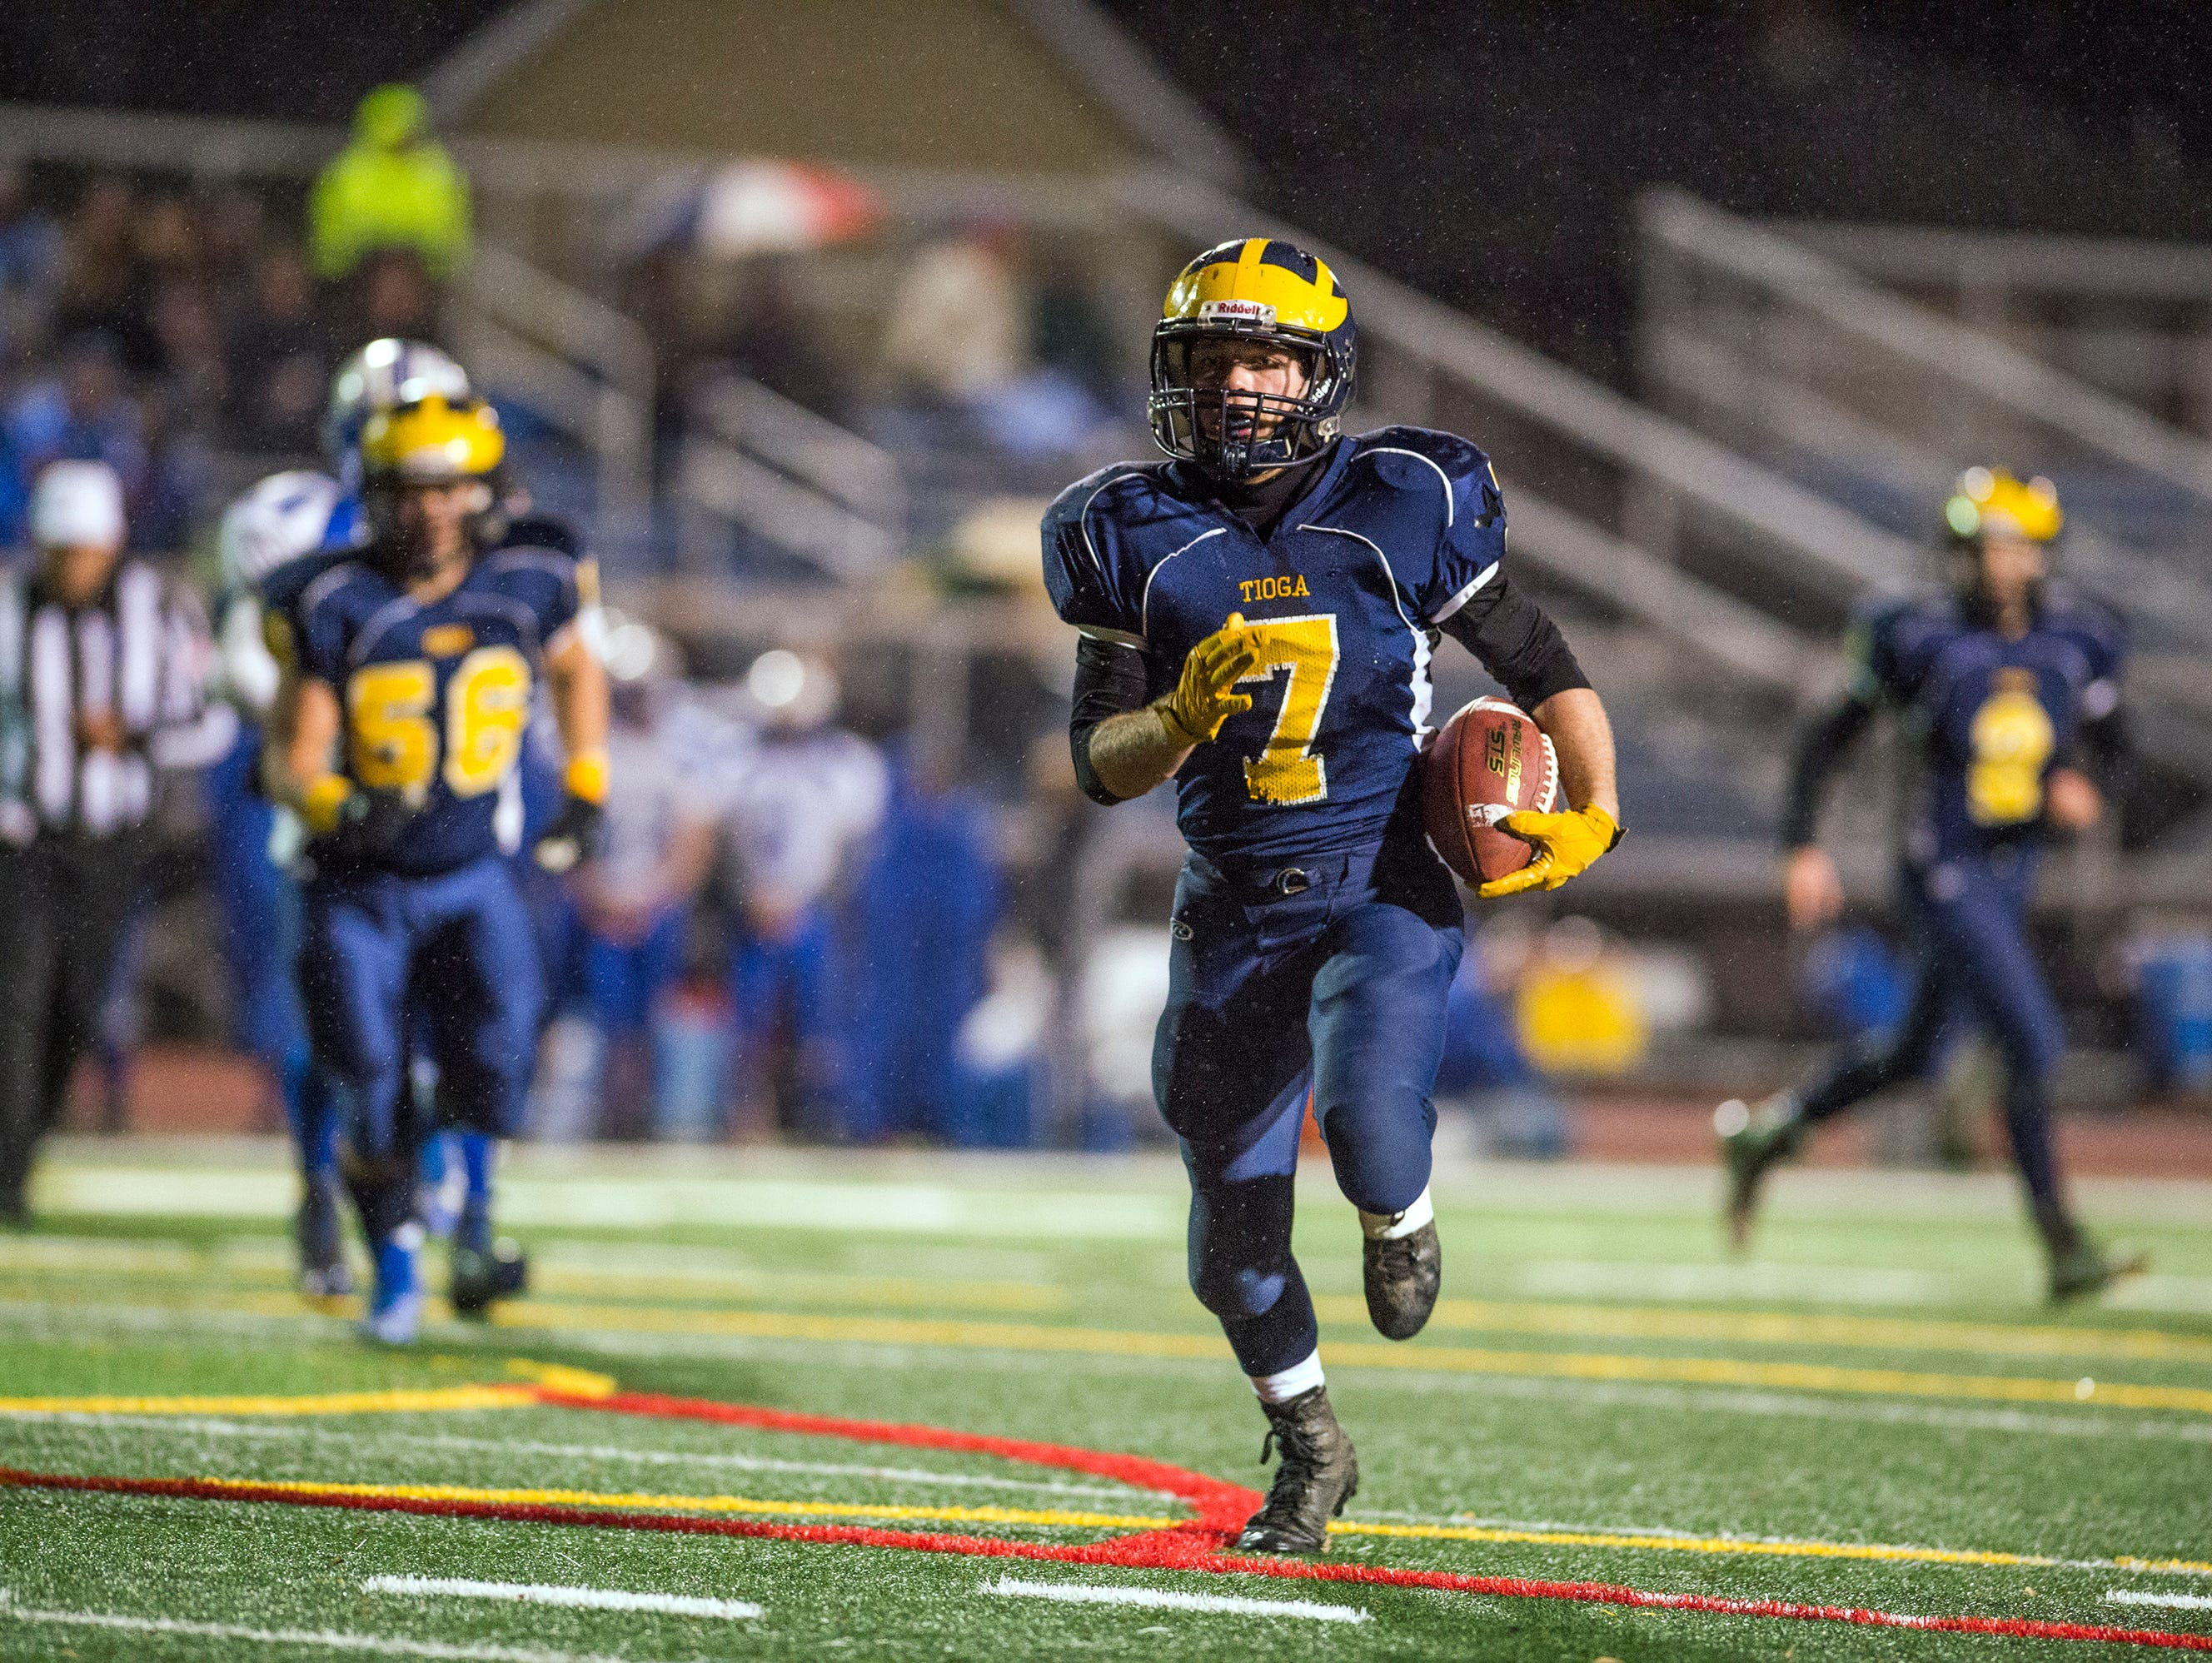 Tioga running back Jesse Manuel rushes for a touchdown during the second quarter of the Tiger's Class D state quarterfinal playoff game against Sandy Creek at Binghamton Alumni Stadium on Friday, Nov. 13, 2015.